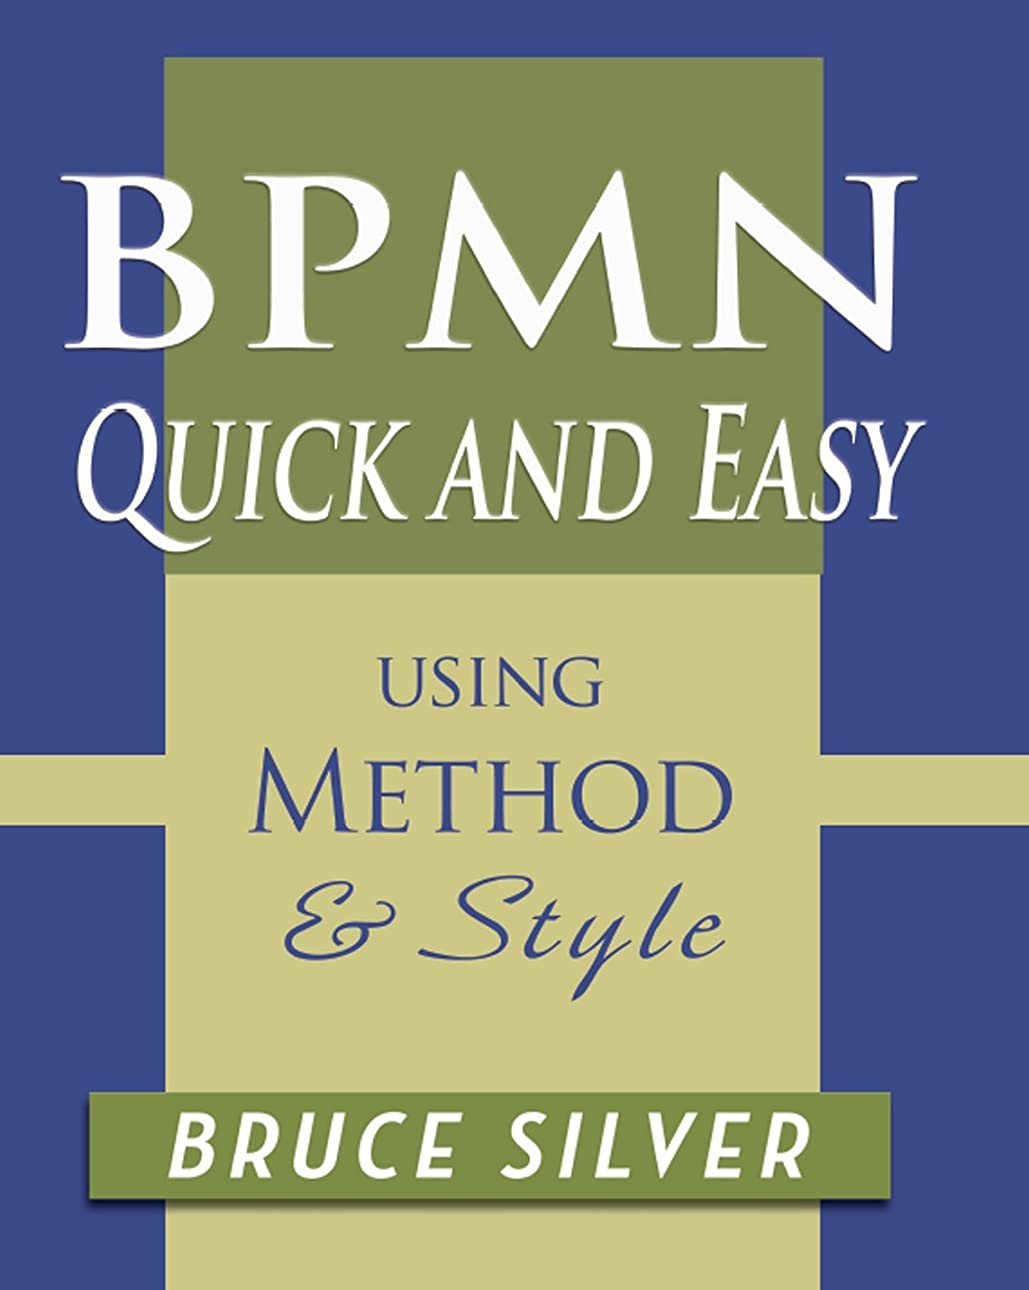 BPMN Quick and Easy Using Method and Style: Process Mapping Guidelines and Examples Using the Business Process Modeling Standard (English Edition)